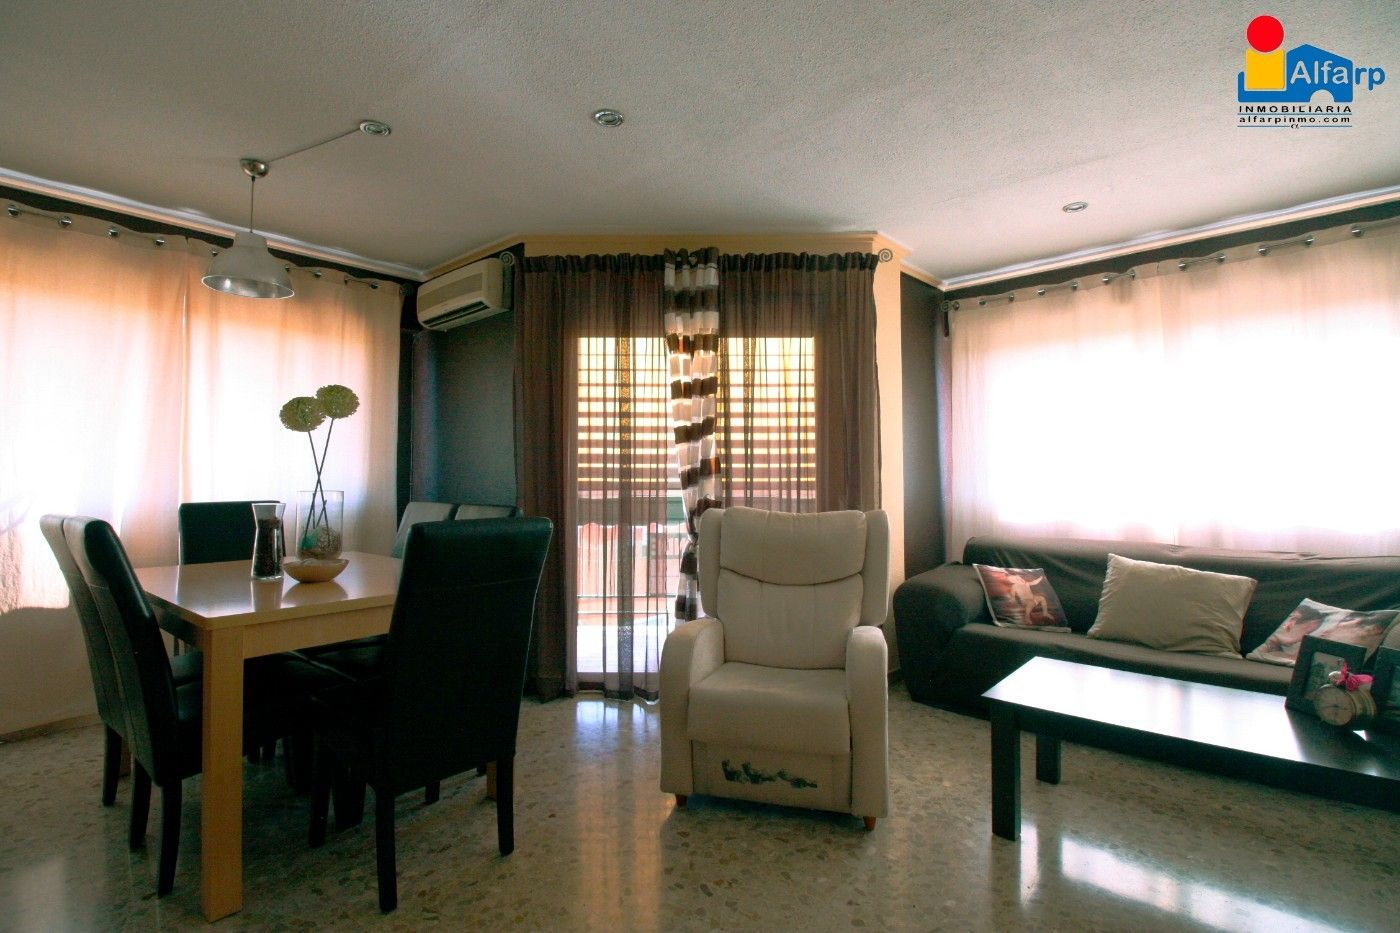 Appartement  Calle magallanes. Piso venta en alginet